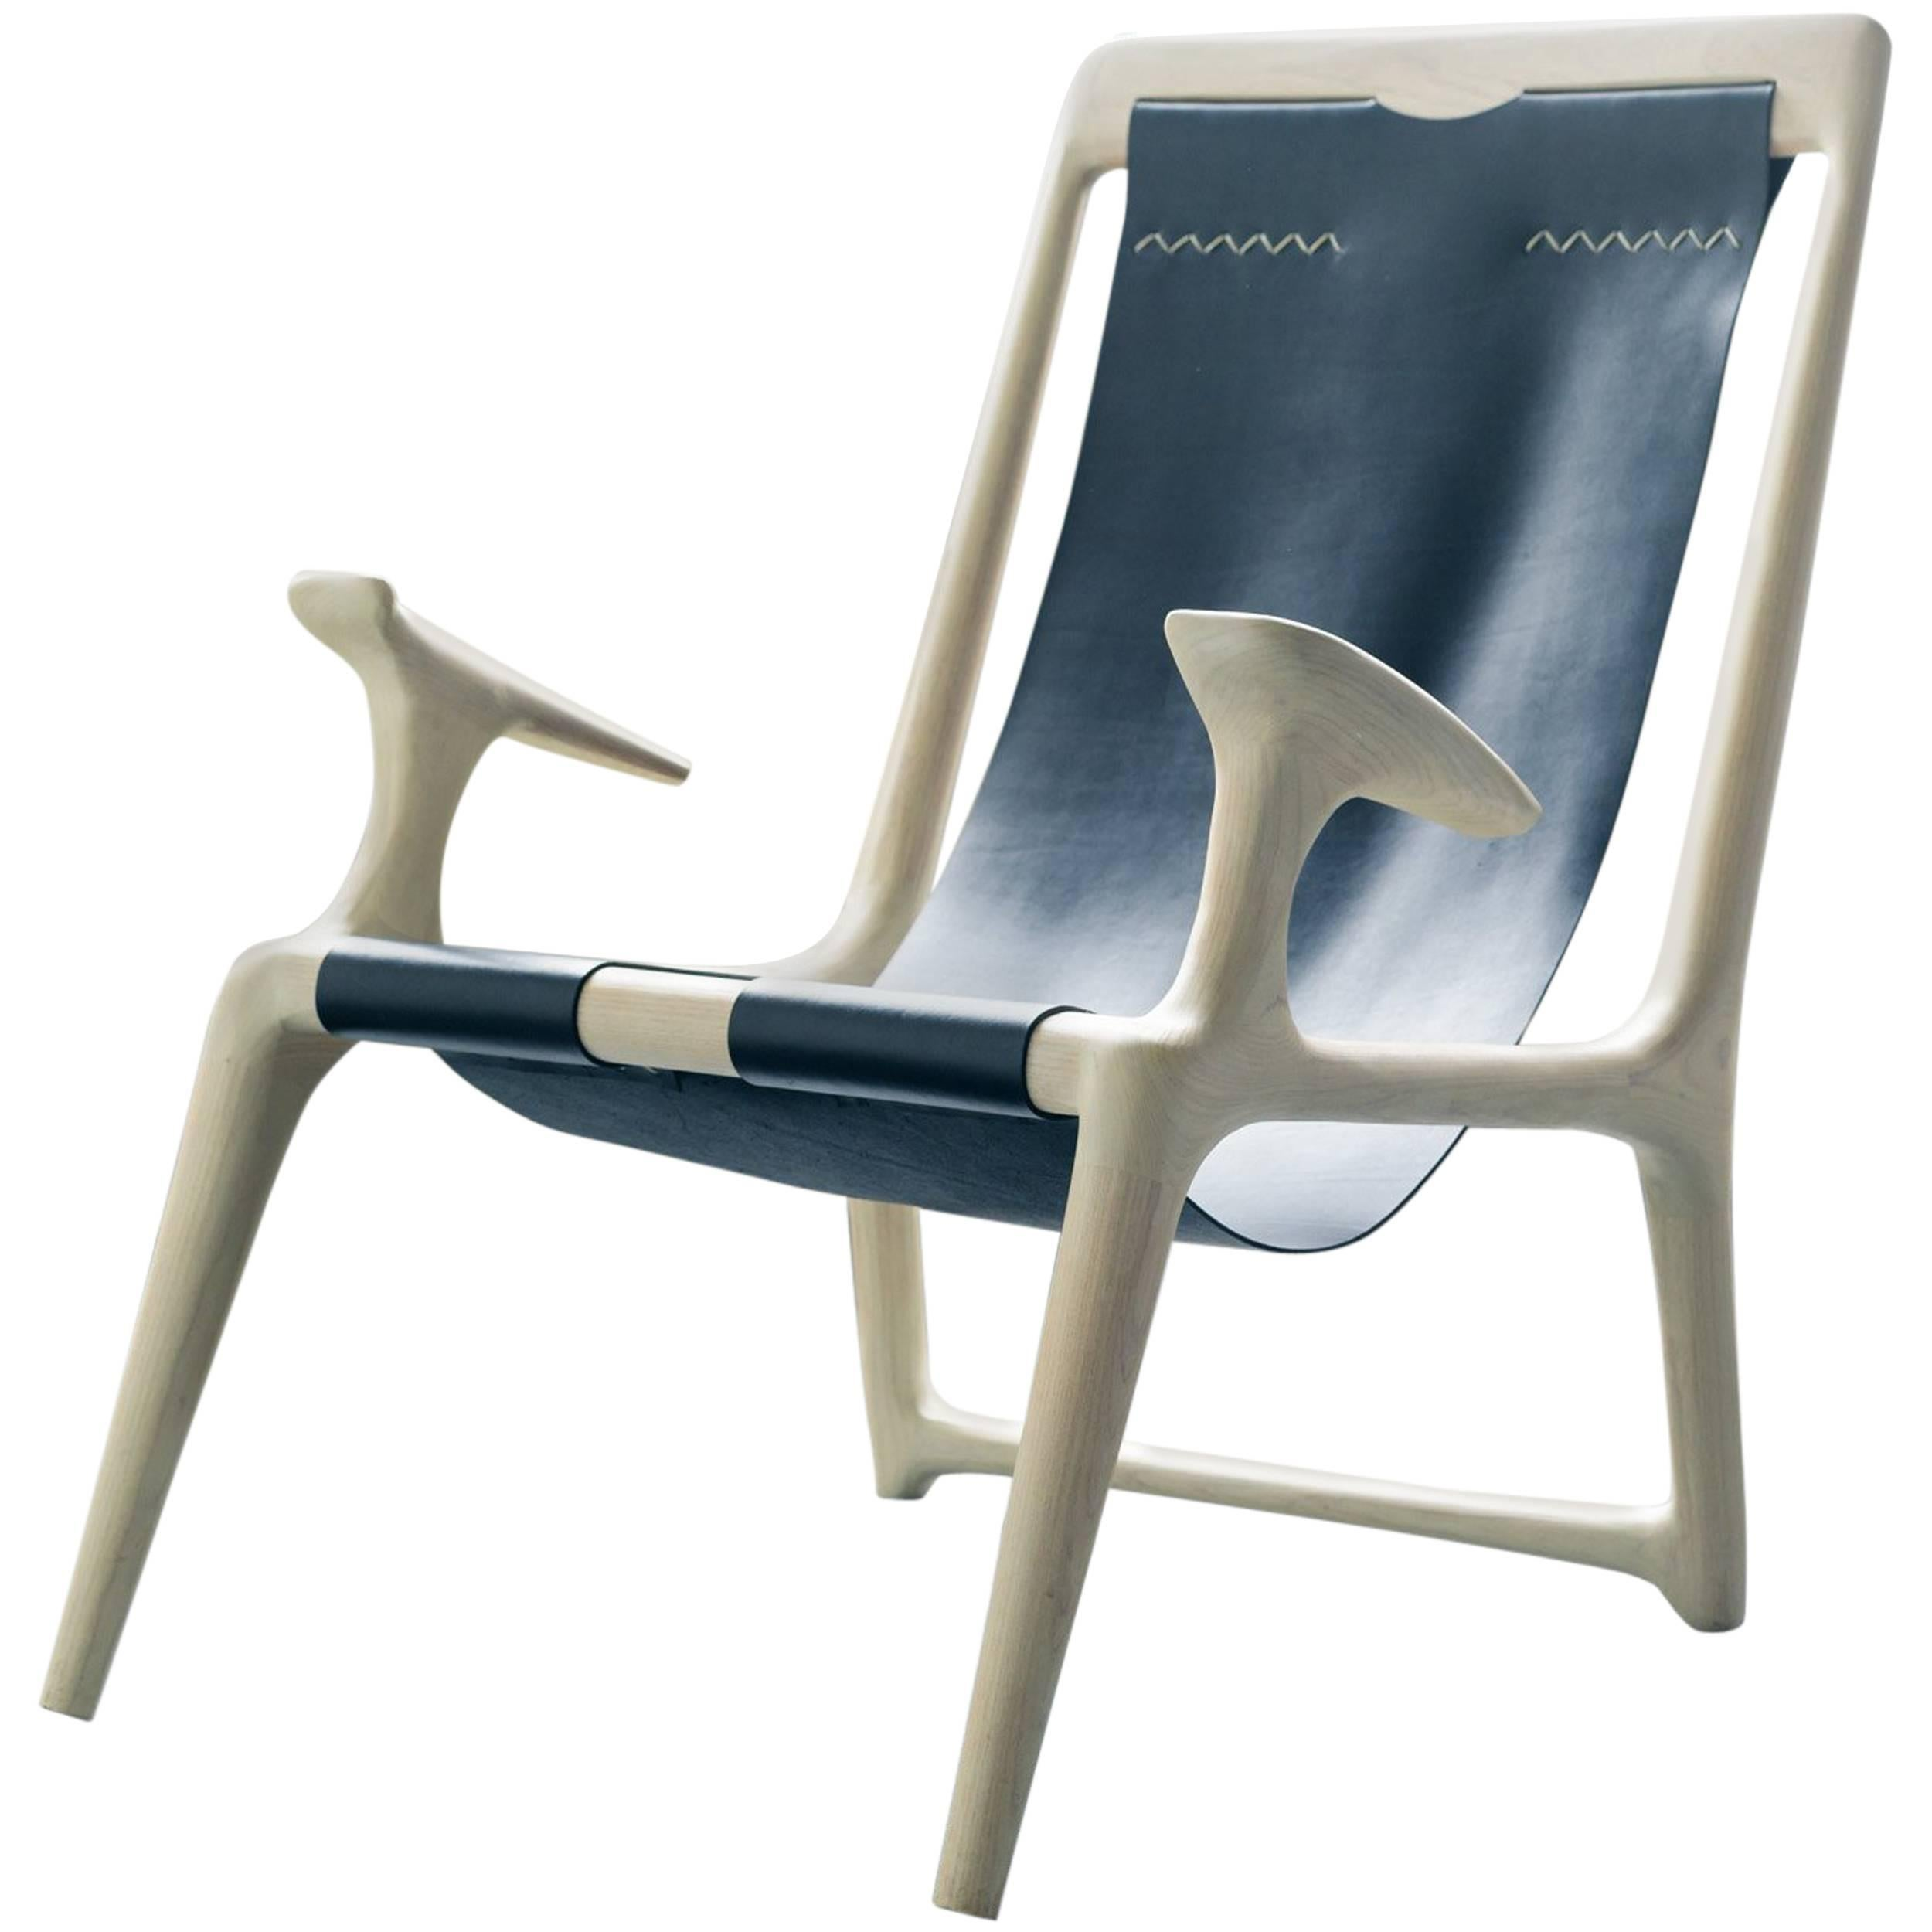 Armchair Handcrafted from White Ash with Black Leather Sling